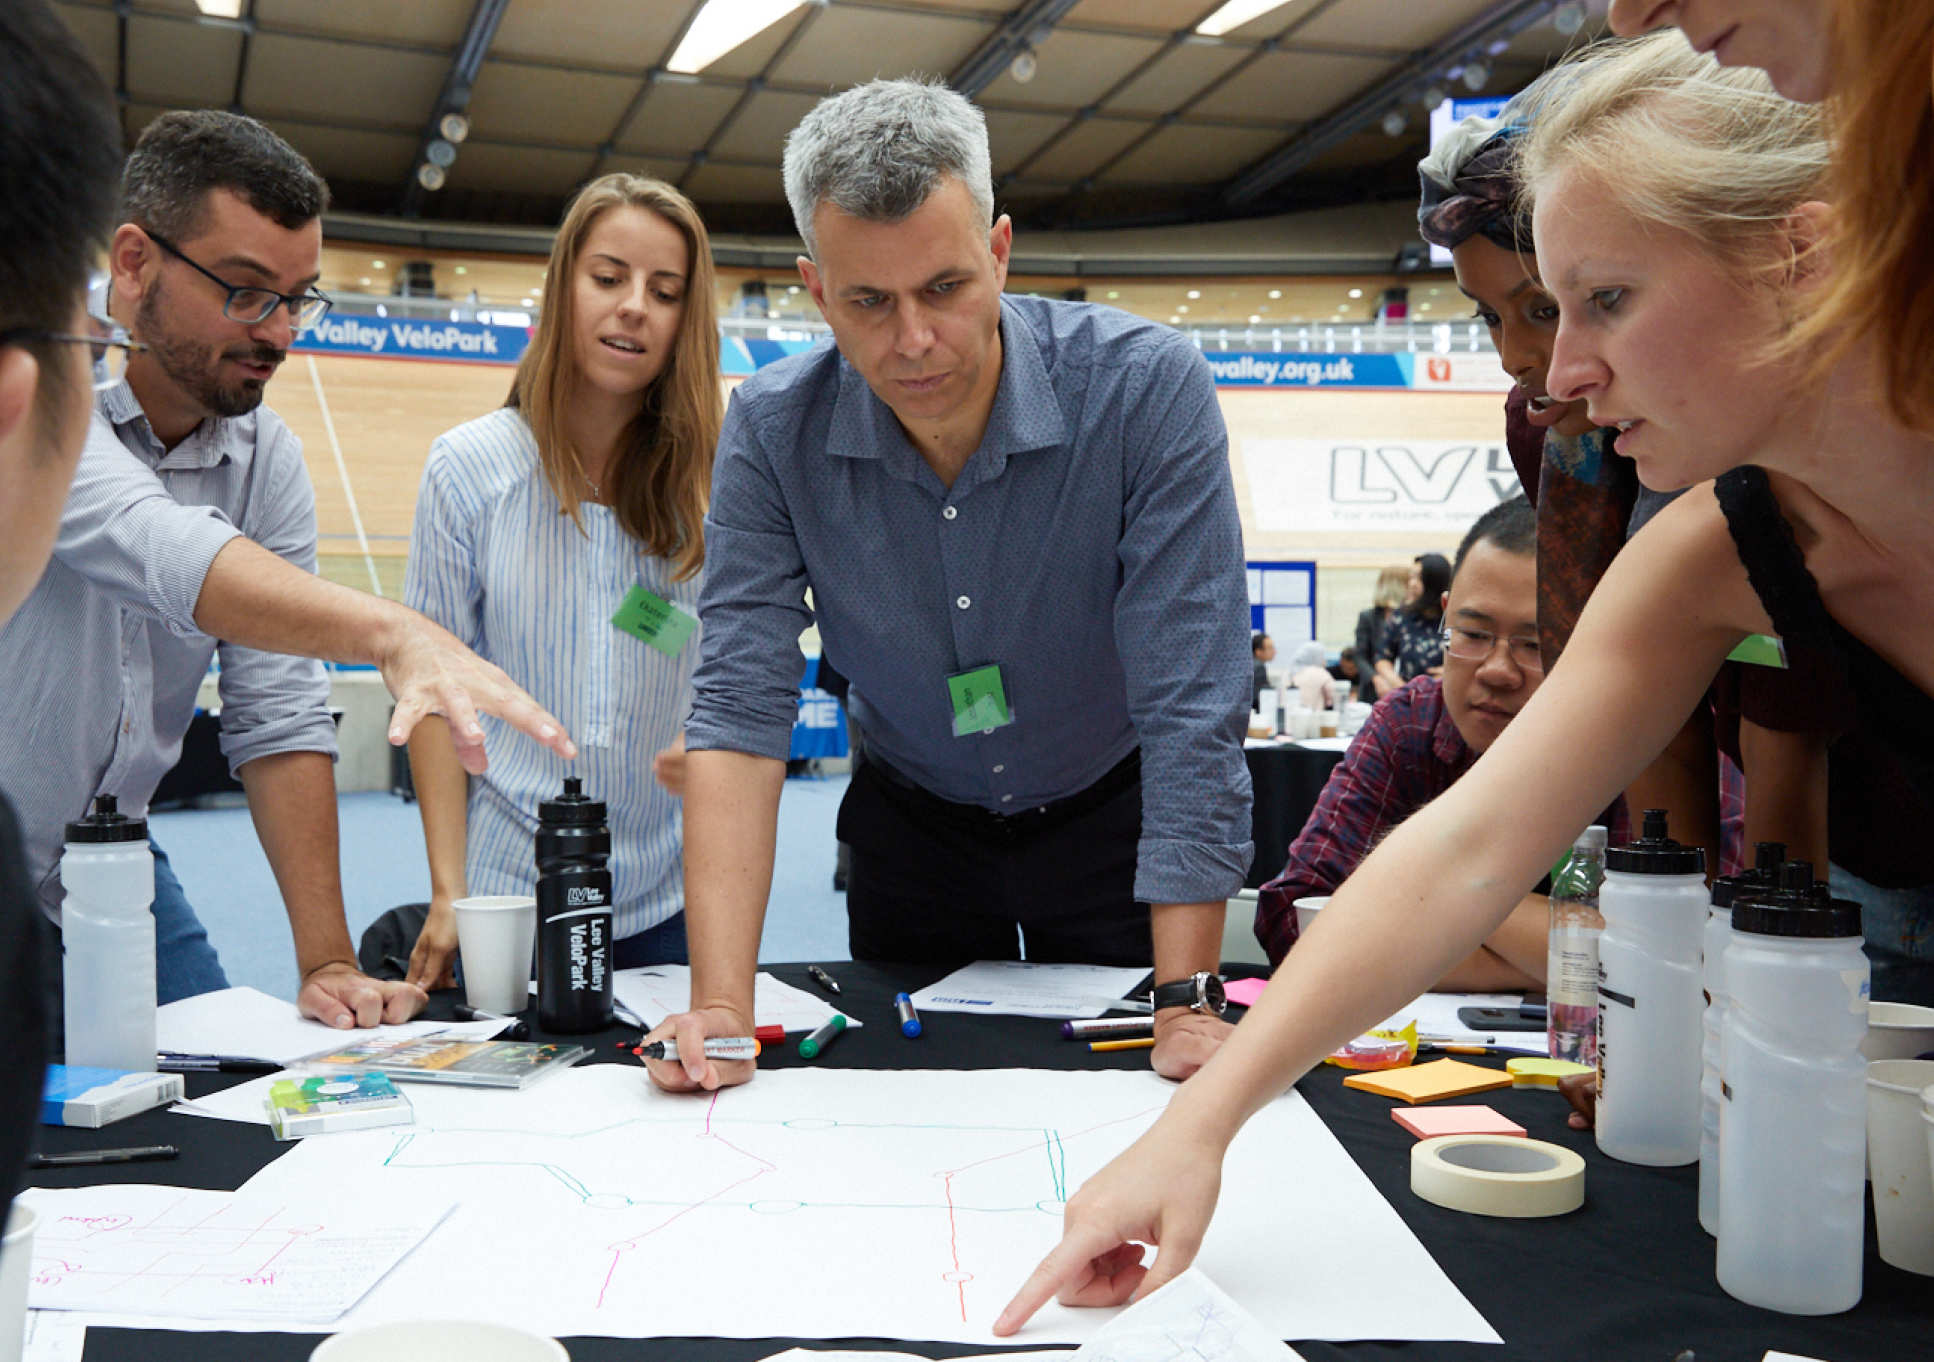 The teams discussed global challenges facing cities in the future